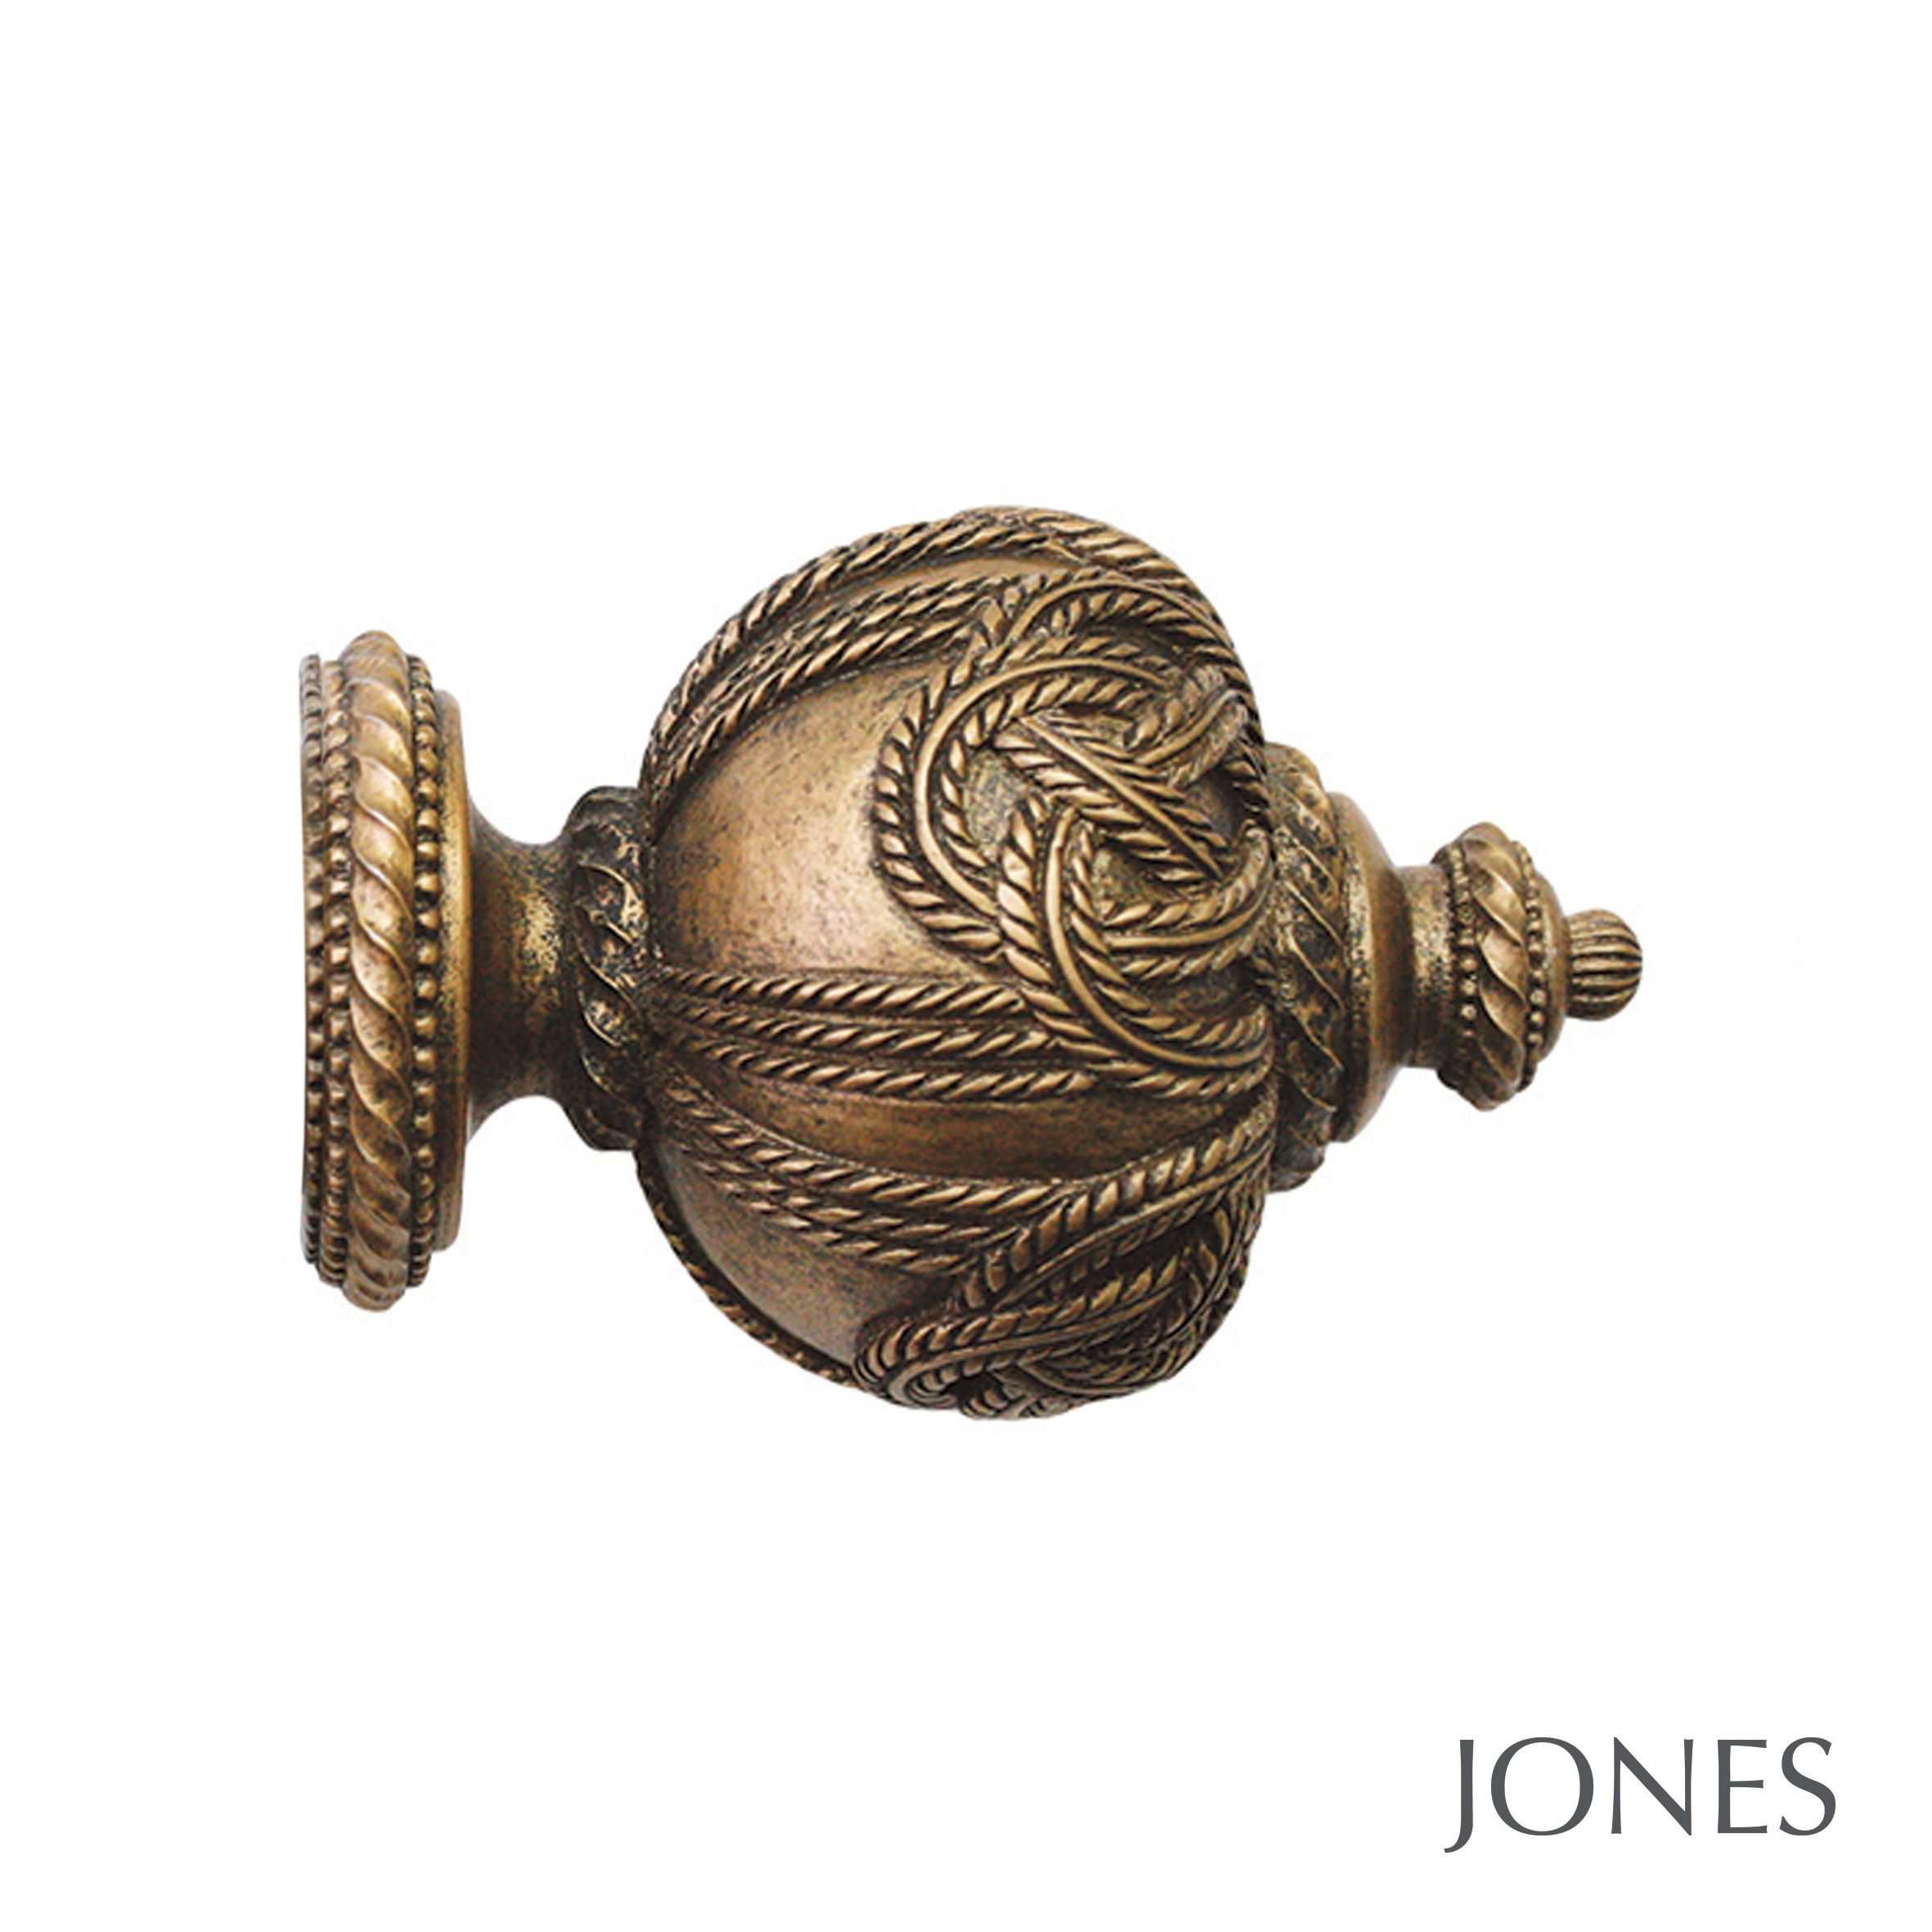 50mm Jones Florentine Rope Finial antique gold